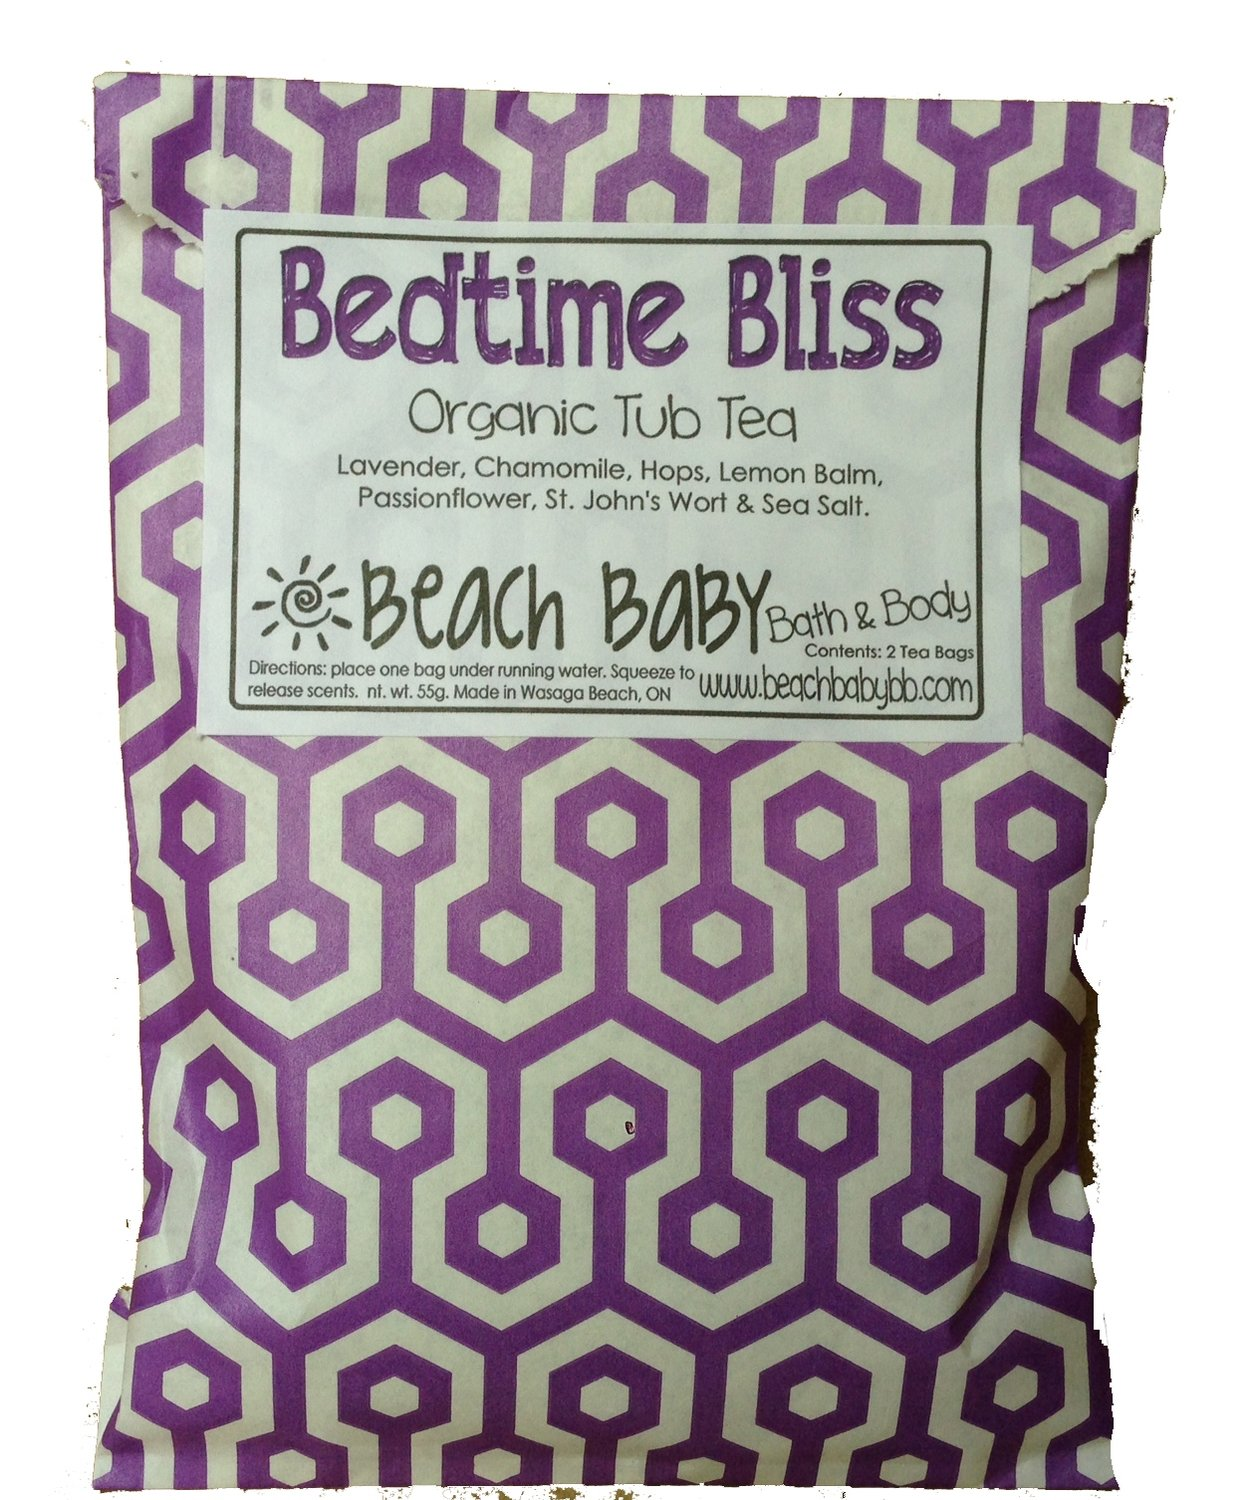 Bedtime Bliss Tub Tea